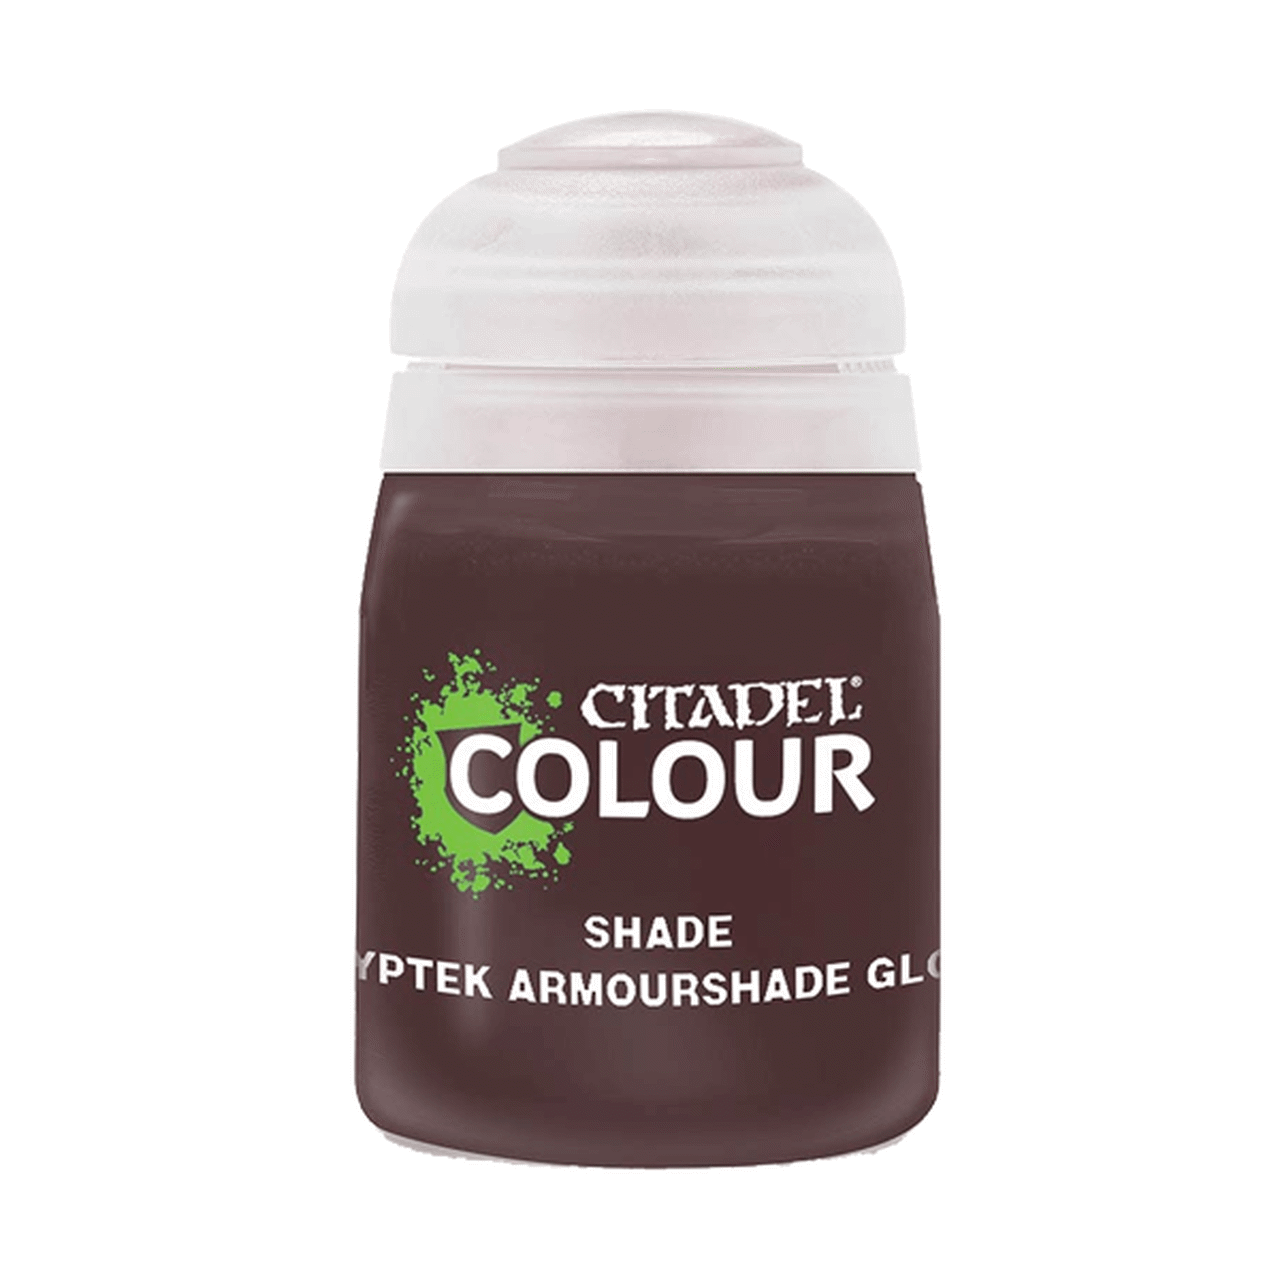 SHADE: CRYPTEK ARMOURSHADE GLOSS (18ML)